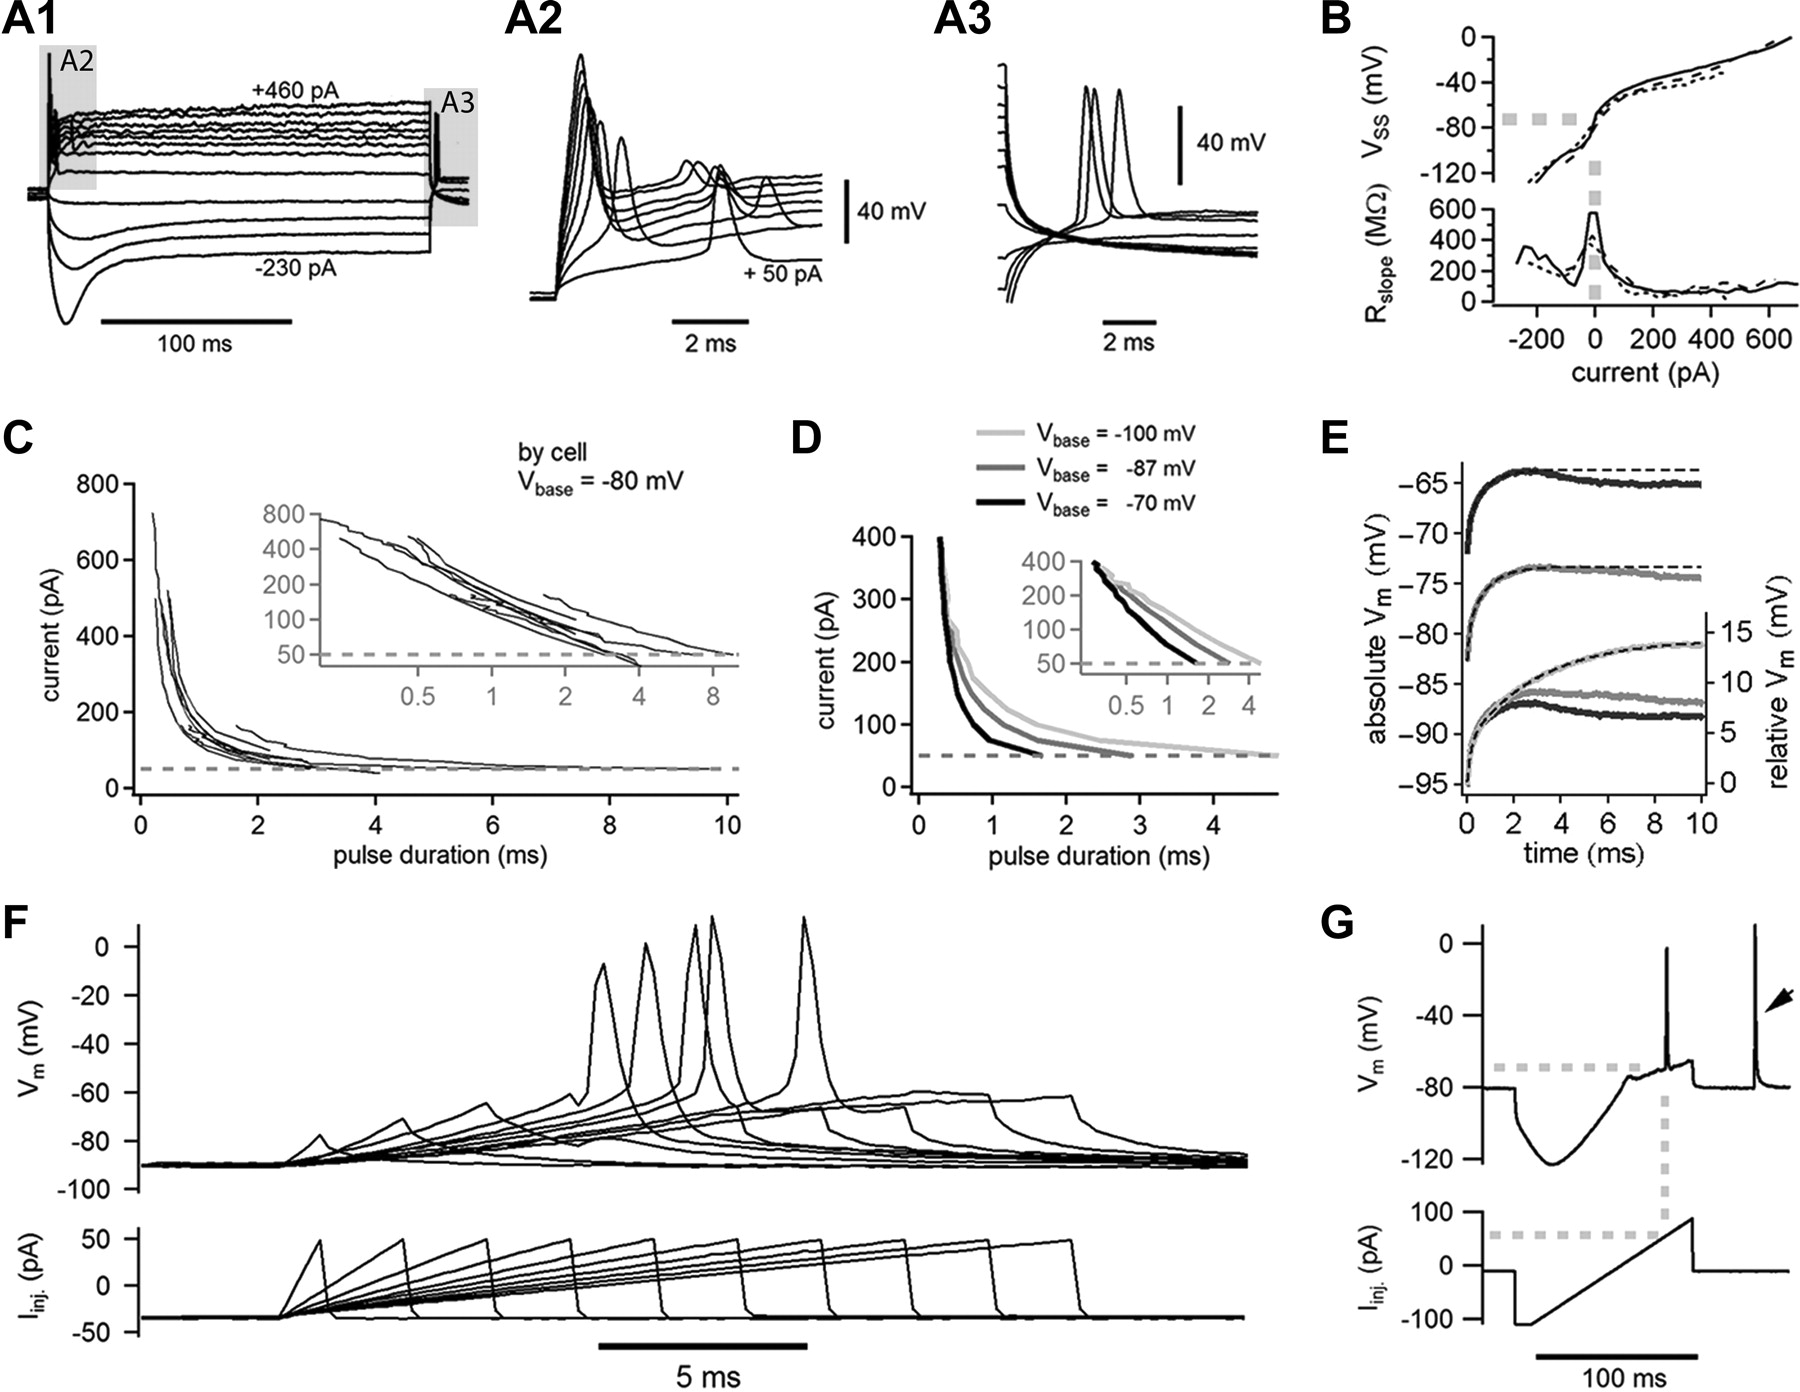 Spike Encoding Of Neurotransmitter Release Timing By Spiral Ganglion The Threephase Bridge Rectifier Pop Ntype Filter Circuit Is Shown As Download Figure Open In New Tab